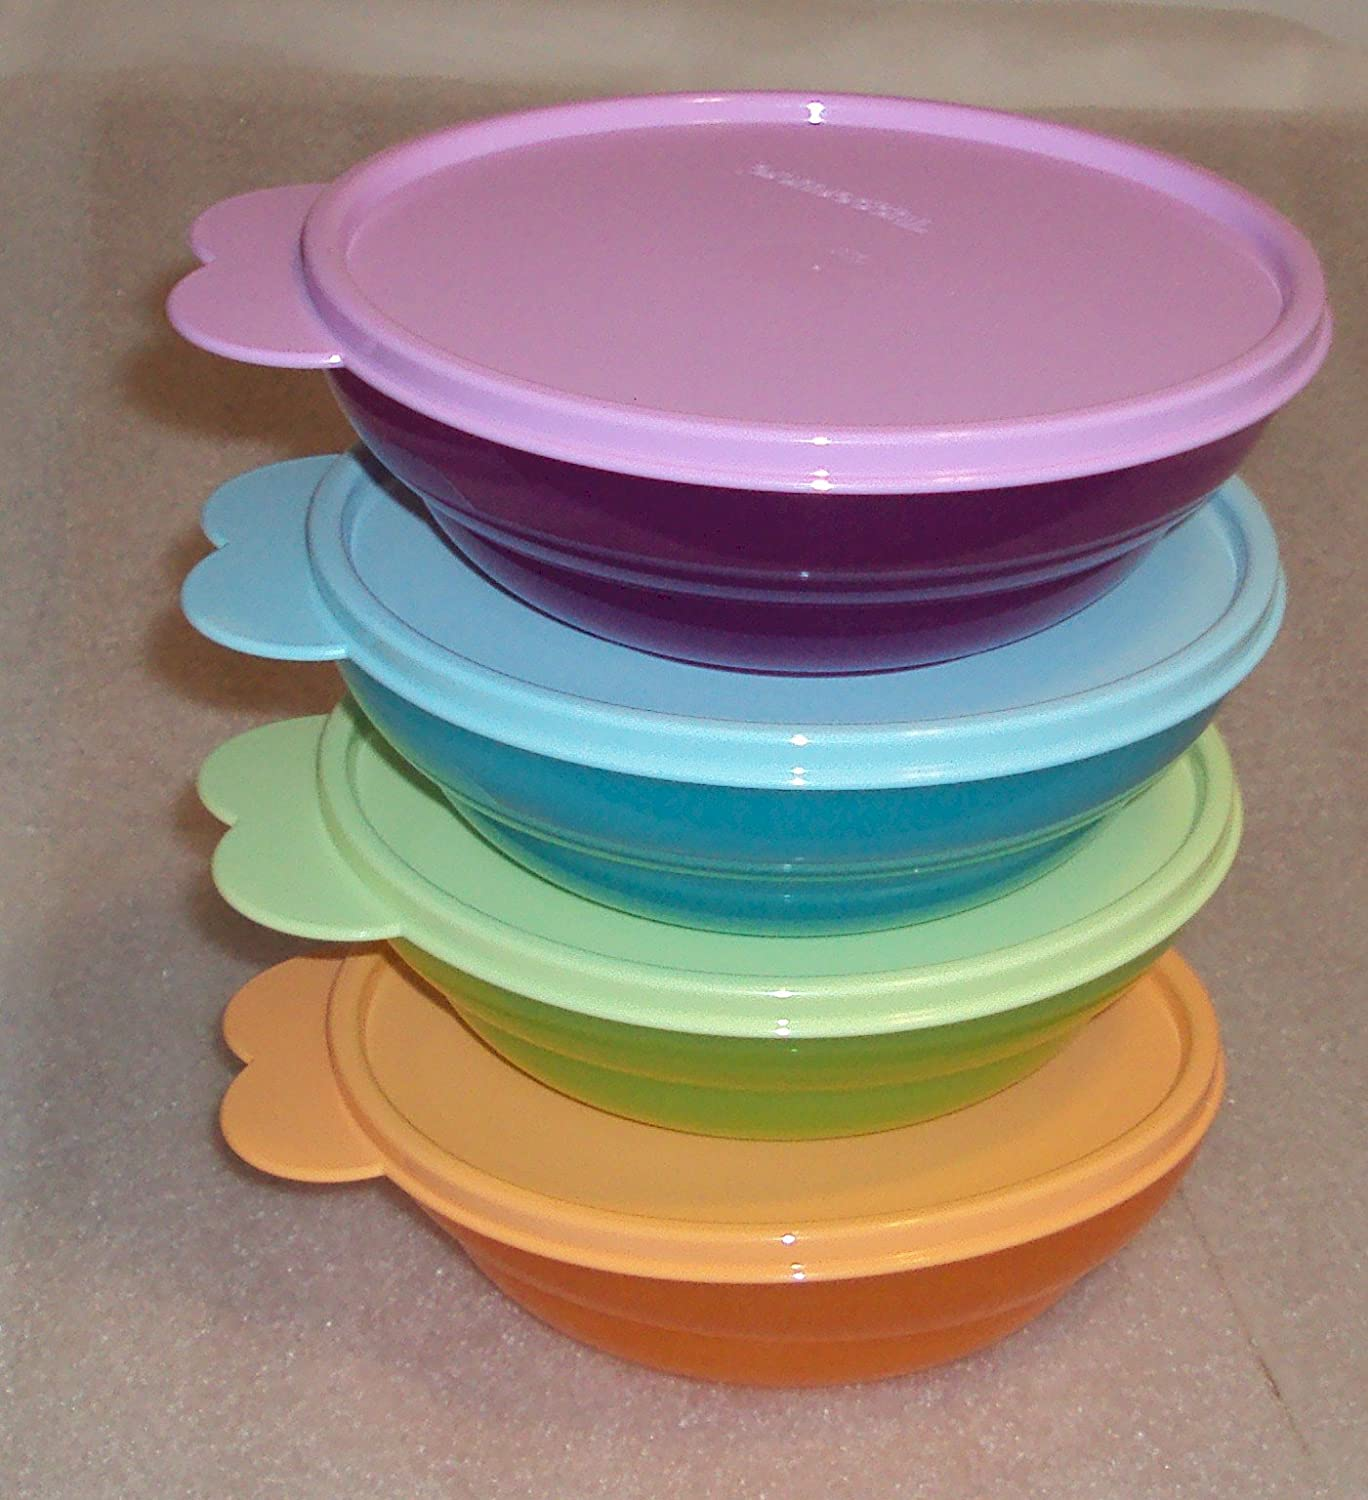 Amazon.com: Tupperware Classic Vintage Style Cereal Bowls, Tropical ...